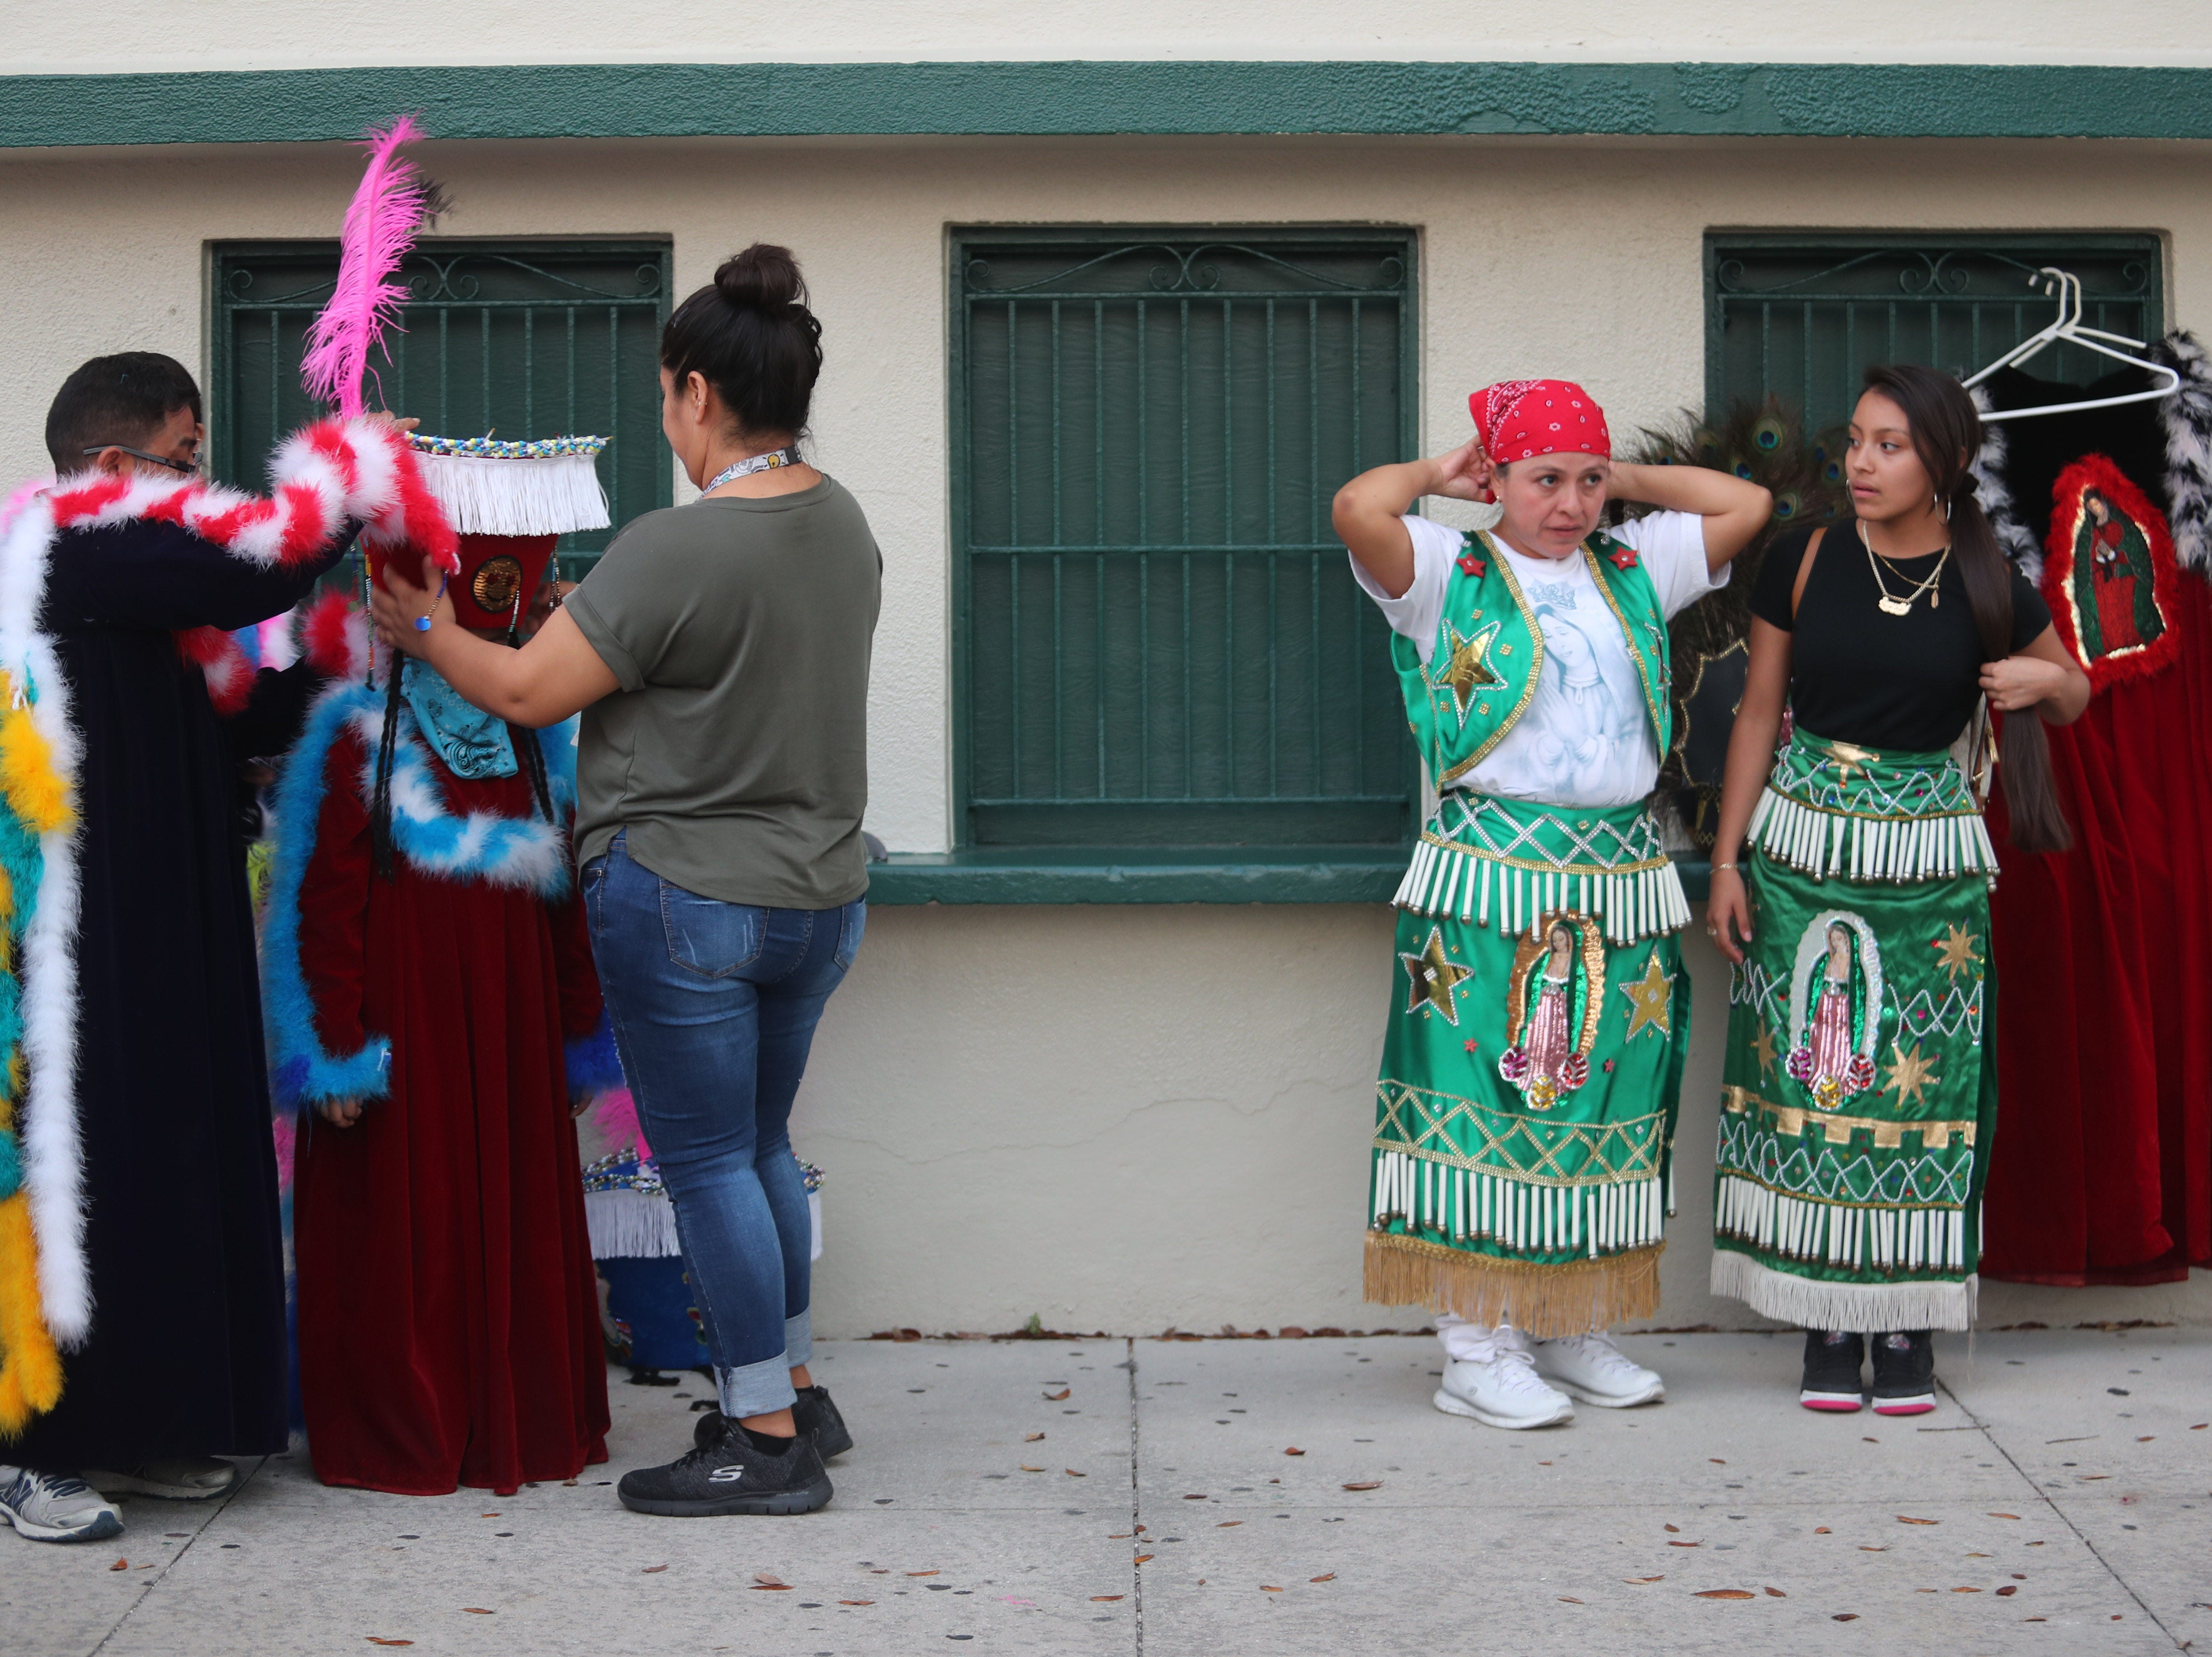 Participants in the Edison Festival of Light Grand Parade wait for the parade to begin on Saturday, Feb. 16, 2019, at the staging area at  Fort Myers High School.